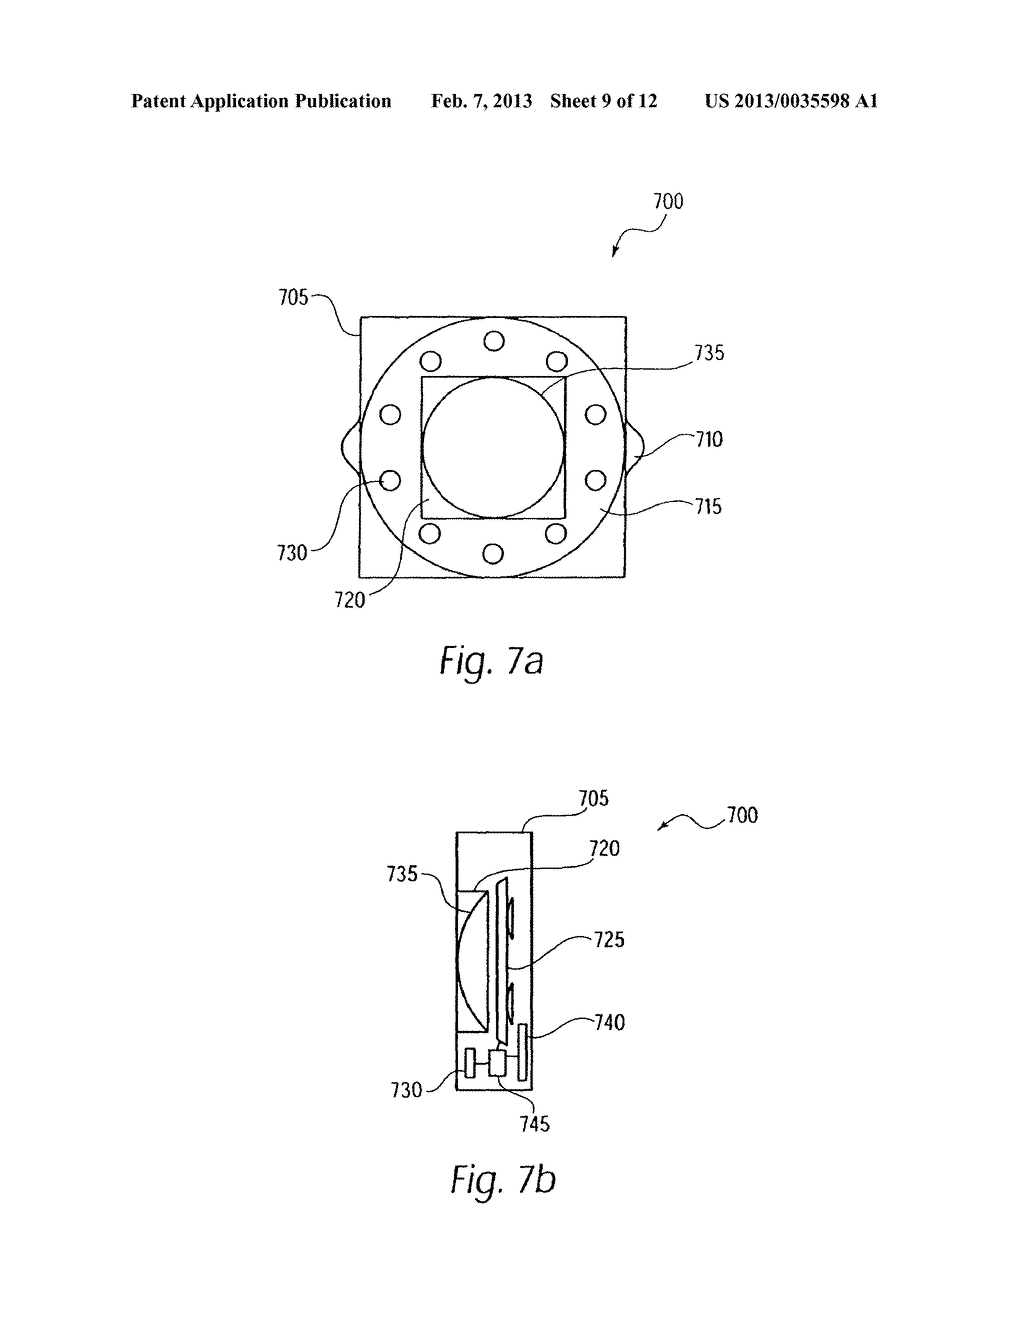 IMAGING DEVICE FOR USE WITH A SURGICAL DEVICE - diagram, schematic, and image 10